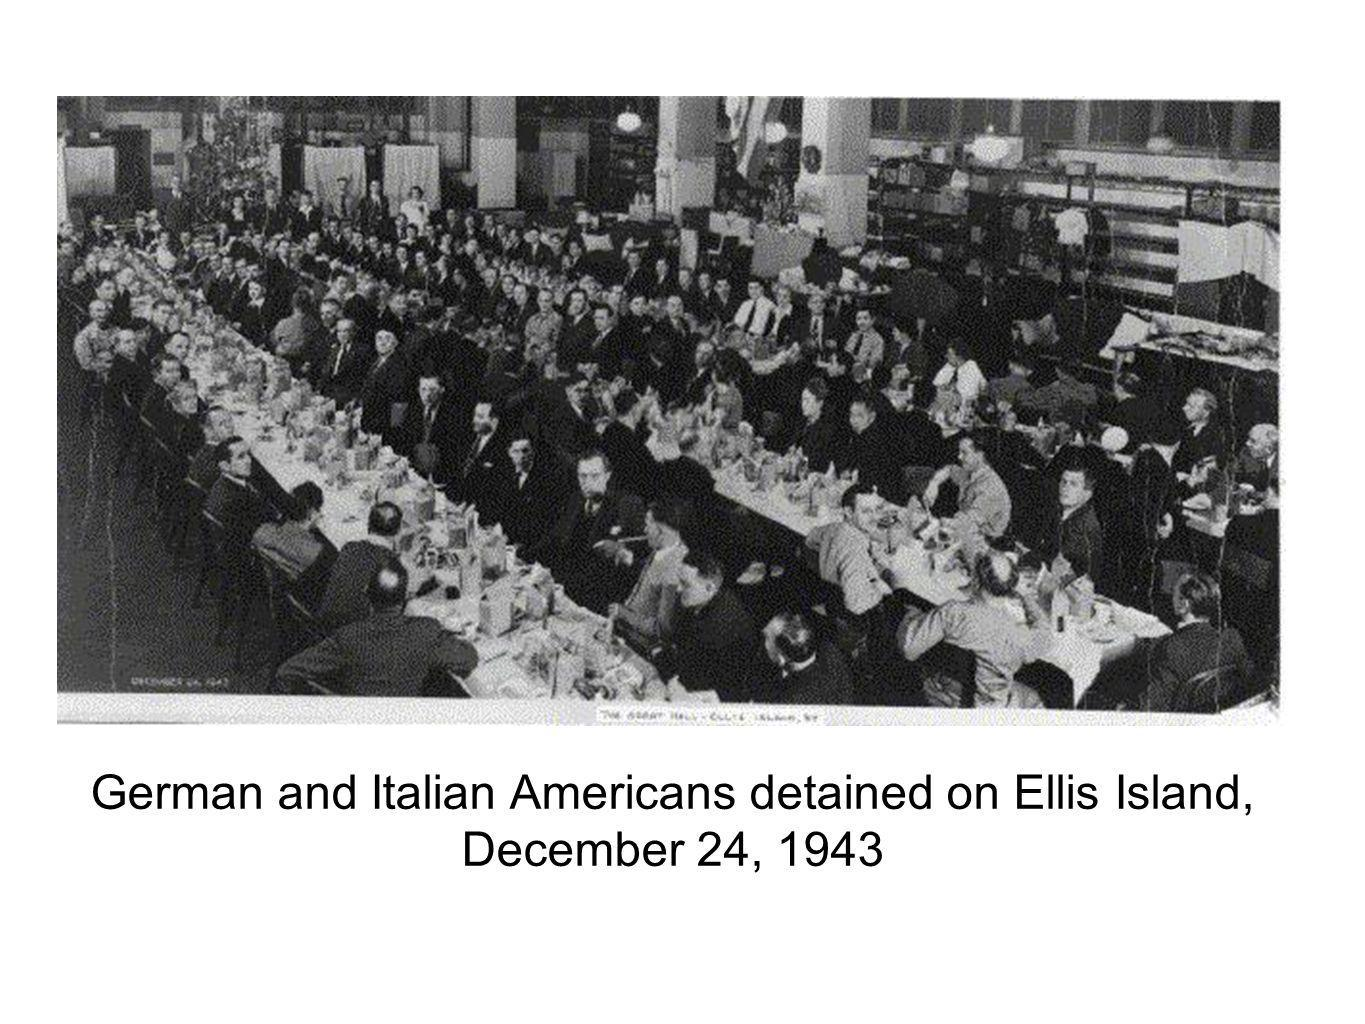 German and Italian Americans detained on Ellis Island, December 24, 1943